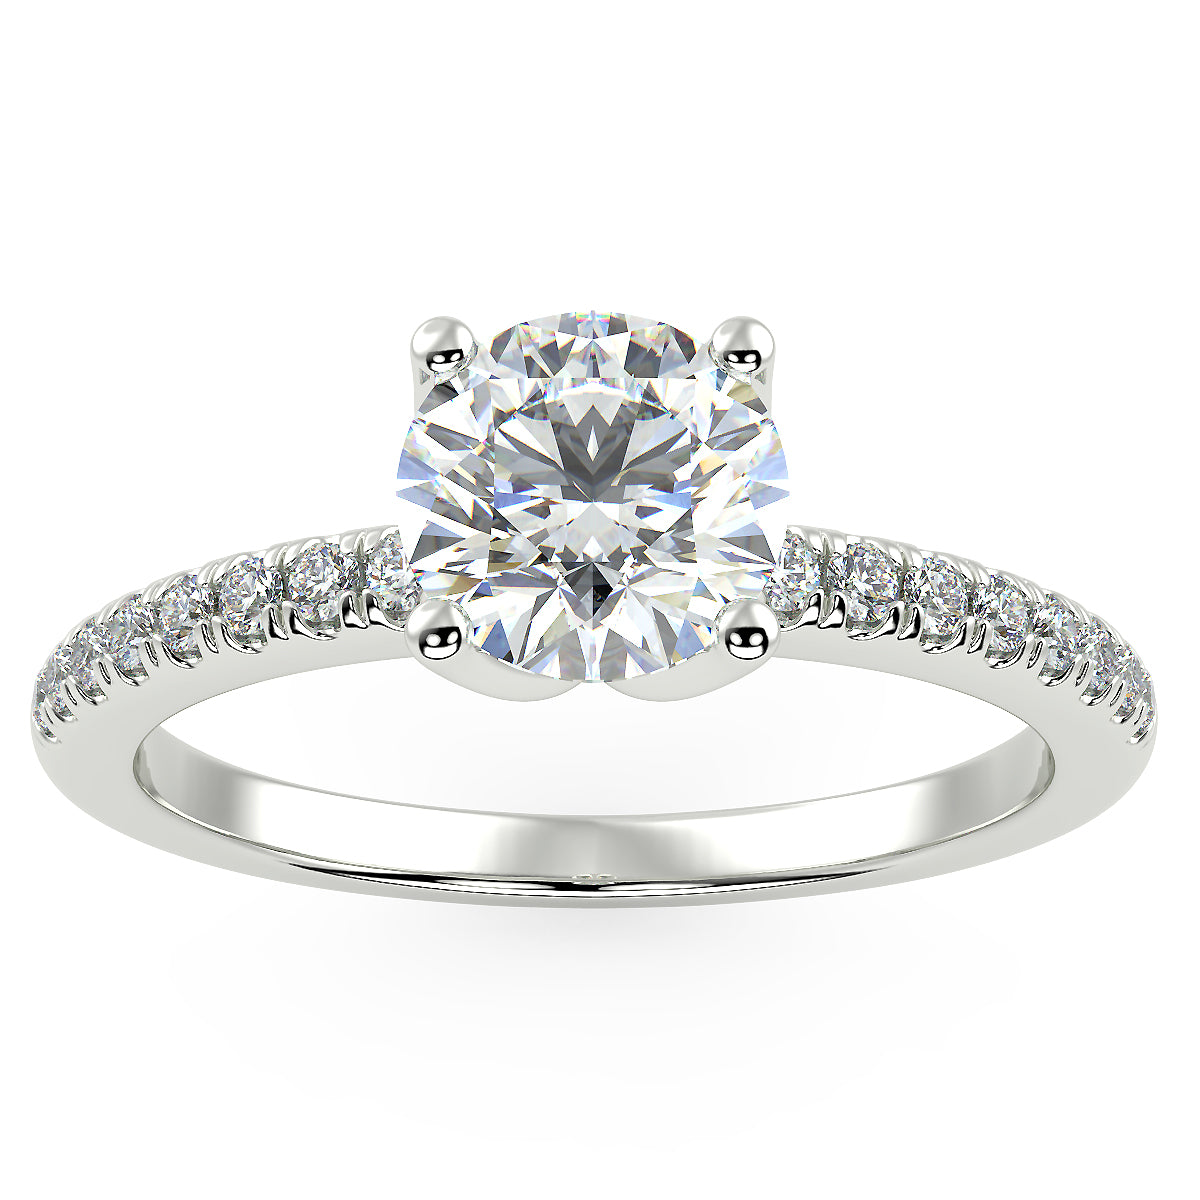 Altair Engagement Ring in White Gold